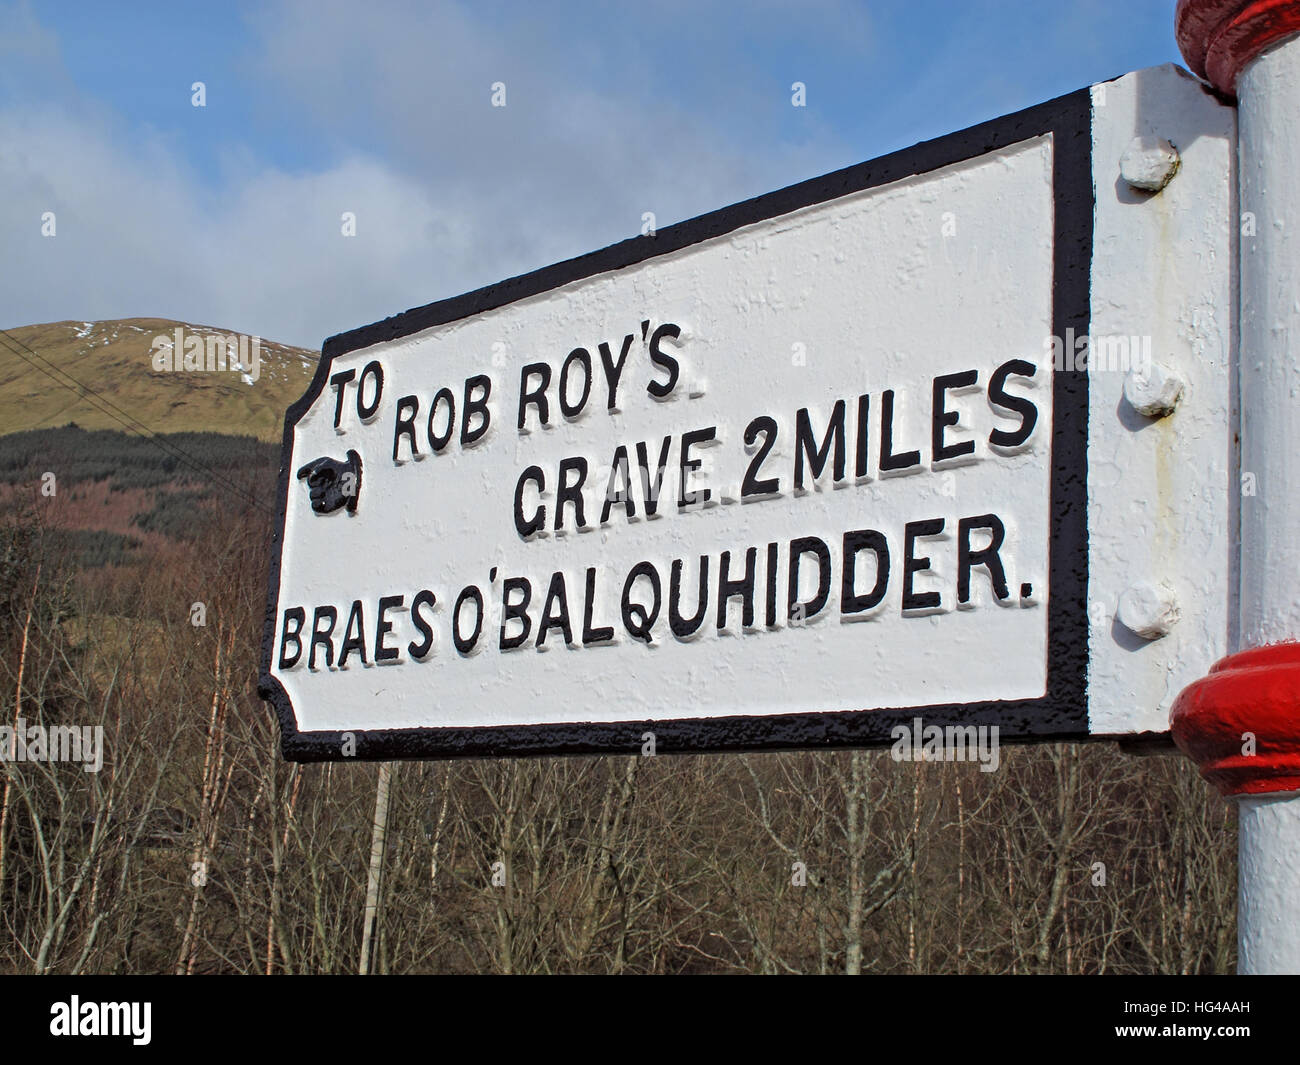 Nationalism,Roy,MacGregor,red,hair,haired,hero,martyr,outlaw,Balquidder,Inverlochlarig,Beg,graveyard,burial,buried,tomb,Robert,MacGregor,white,post,finger,fingerpost,village,Braes,2 miles,red,Scottish Nationalism,Rob Roy,red hair,Scottish Outlaw,GoTonySmith,@HotpixUK,Tony,Smith,UK,GB,Great,Britain,United,Kingdom,Scottish,Scots,British,Scotland,problem,with,problem with,issue with,Raibeart,Ruadh,MacGriogair,tourist,tour,tourism,attraction,tourist attraction,travel,famous,grave,yard,tombstone,stone,sign,YES,Stirling,Sterlingshire,rural,countryside,Scottish,SNP,independance party,independence,indyref,referendum,2nd,second,Buy Pictures of,Buy Images Of,Images of,Stock Images,Tony Smith,United Kingdom,Great Britain,British Isles,Raibeart Ruadh MacGriogair,Robert MacGregor,Scottish Countryside